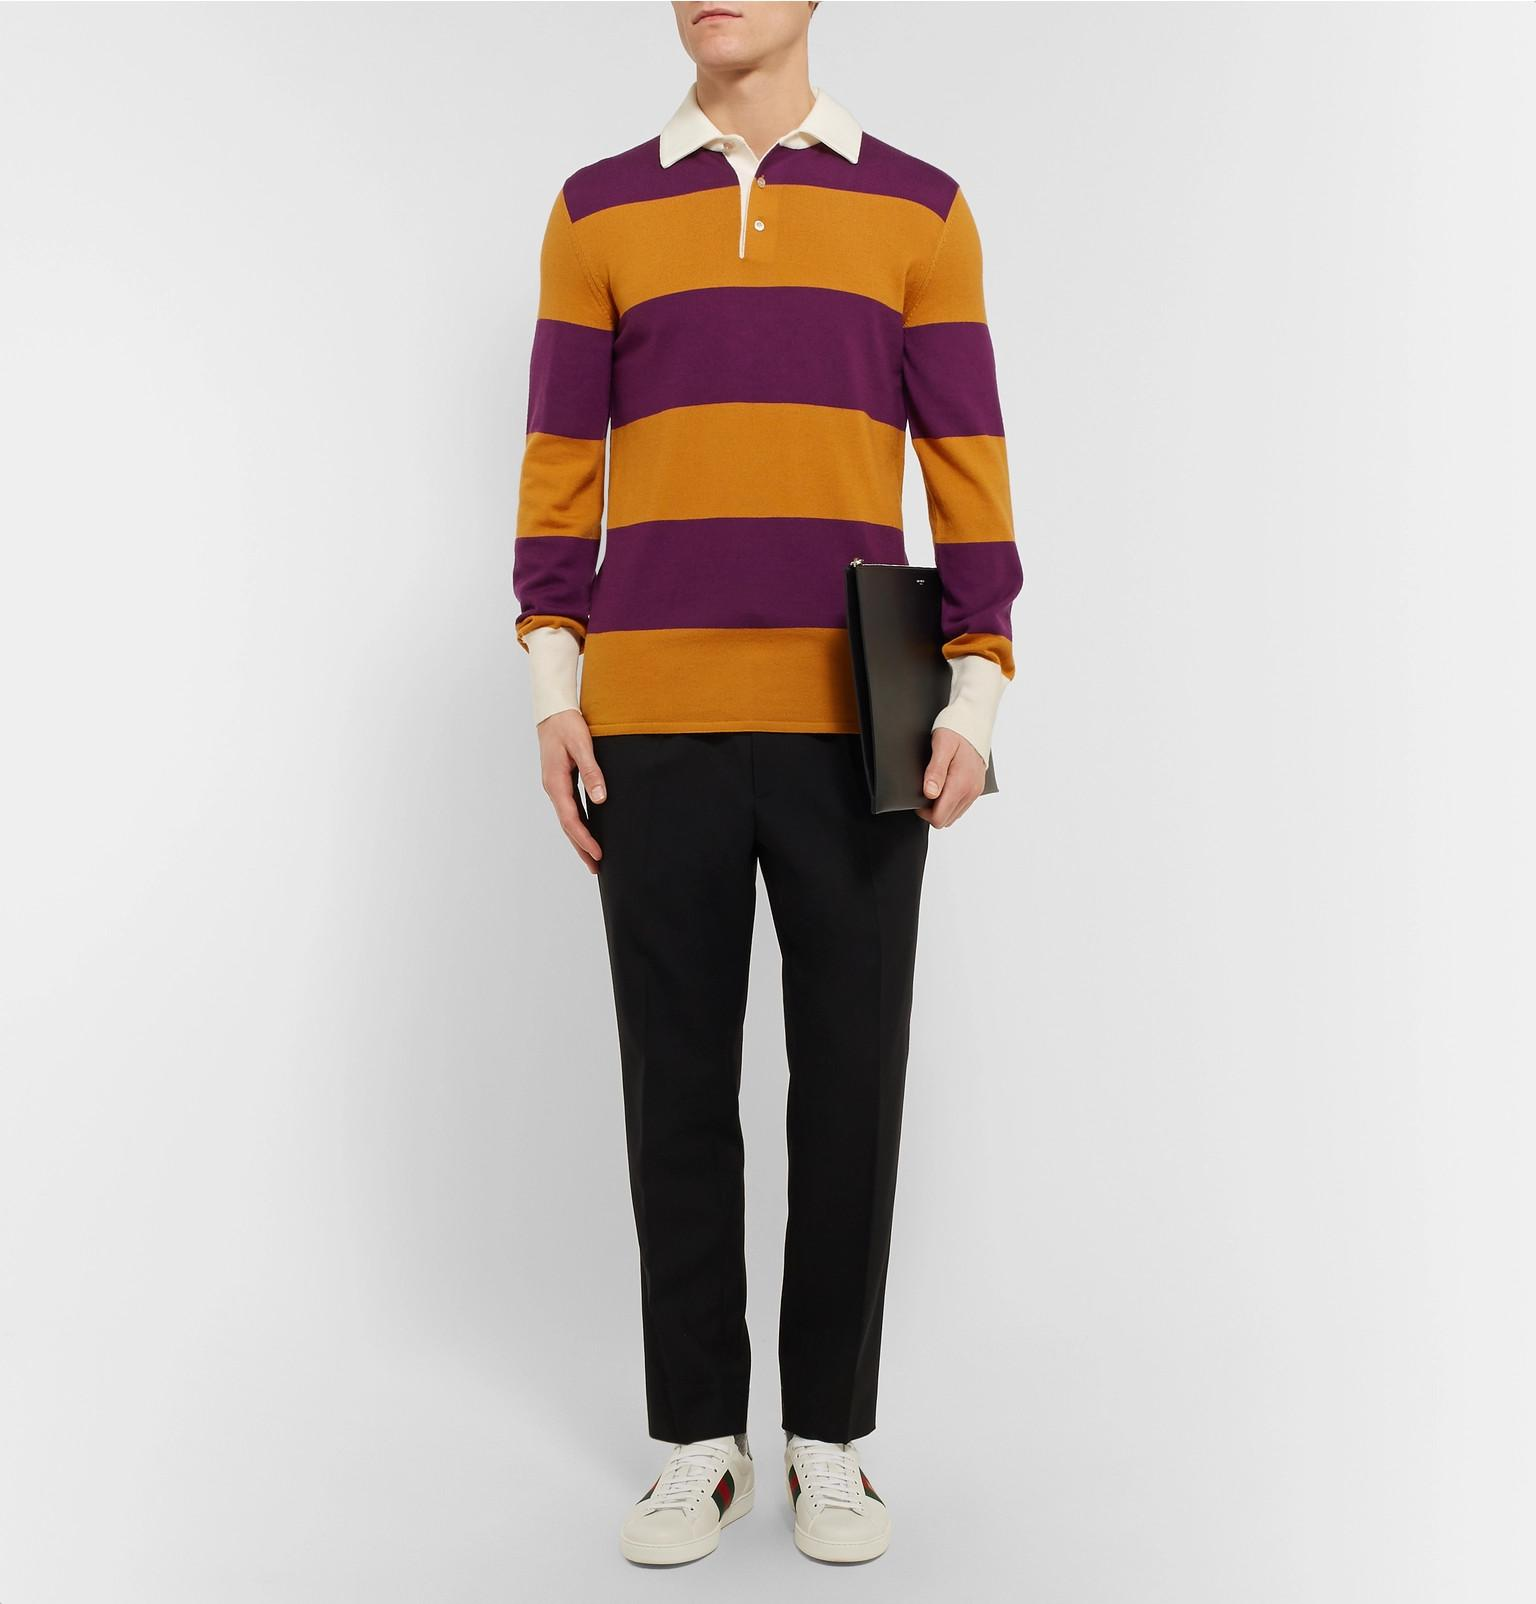 34be86cd1a3 ... Gucci - Purple Embroidered Striped Wool Rugby Shirt for Men - Lyst.  Visit MR PORTER. Tap to visit site